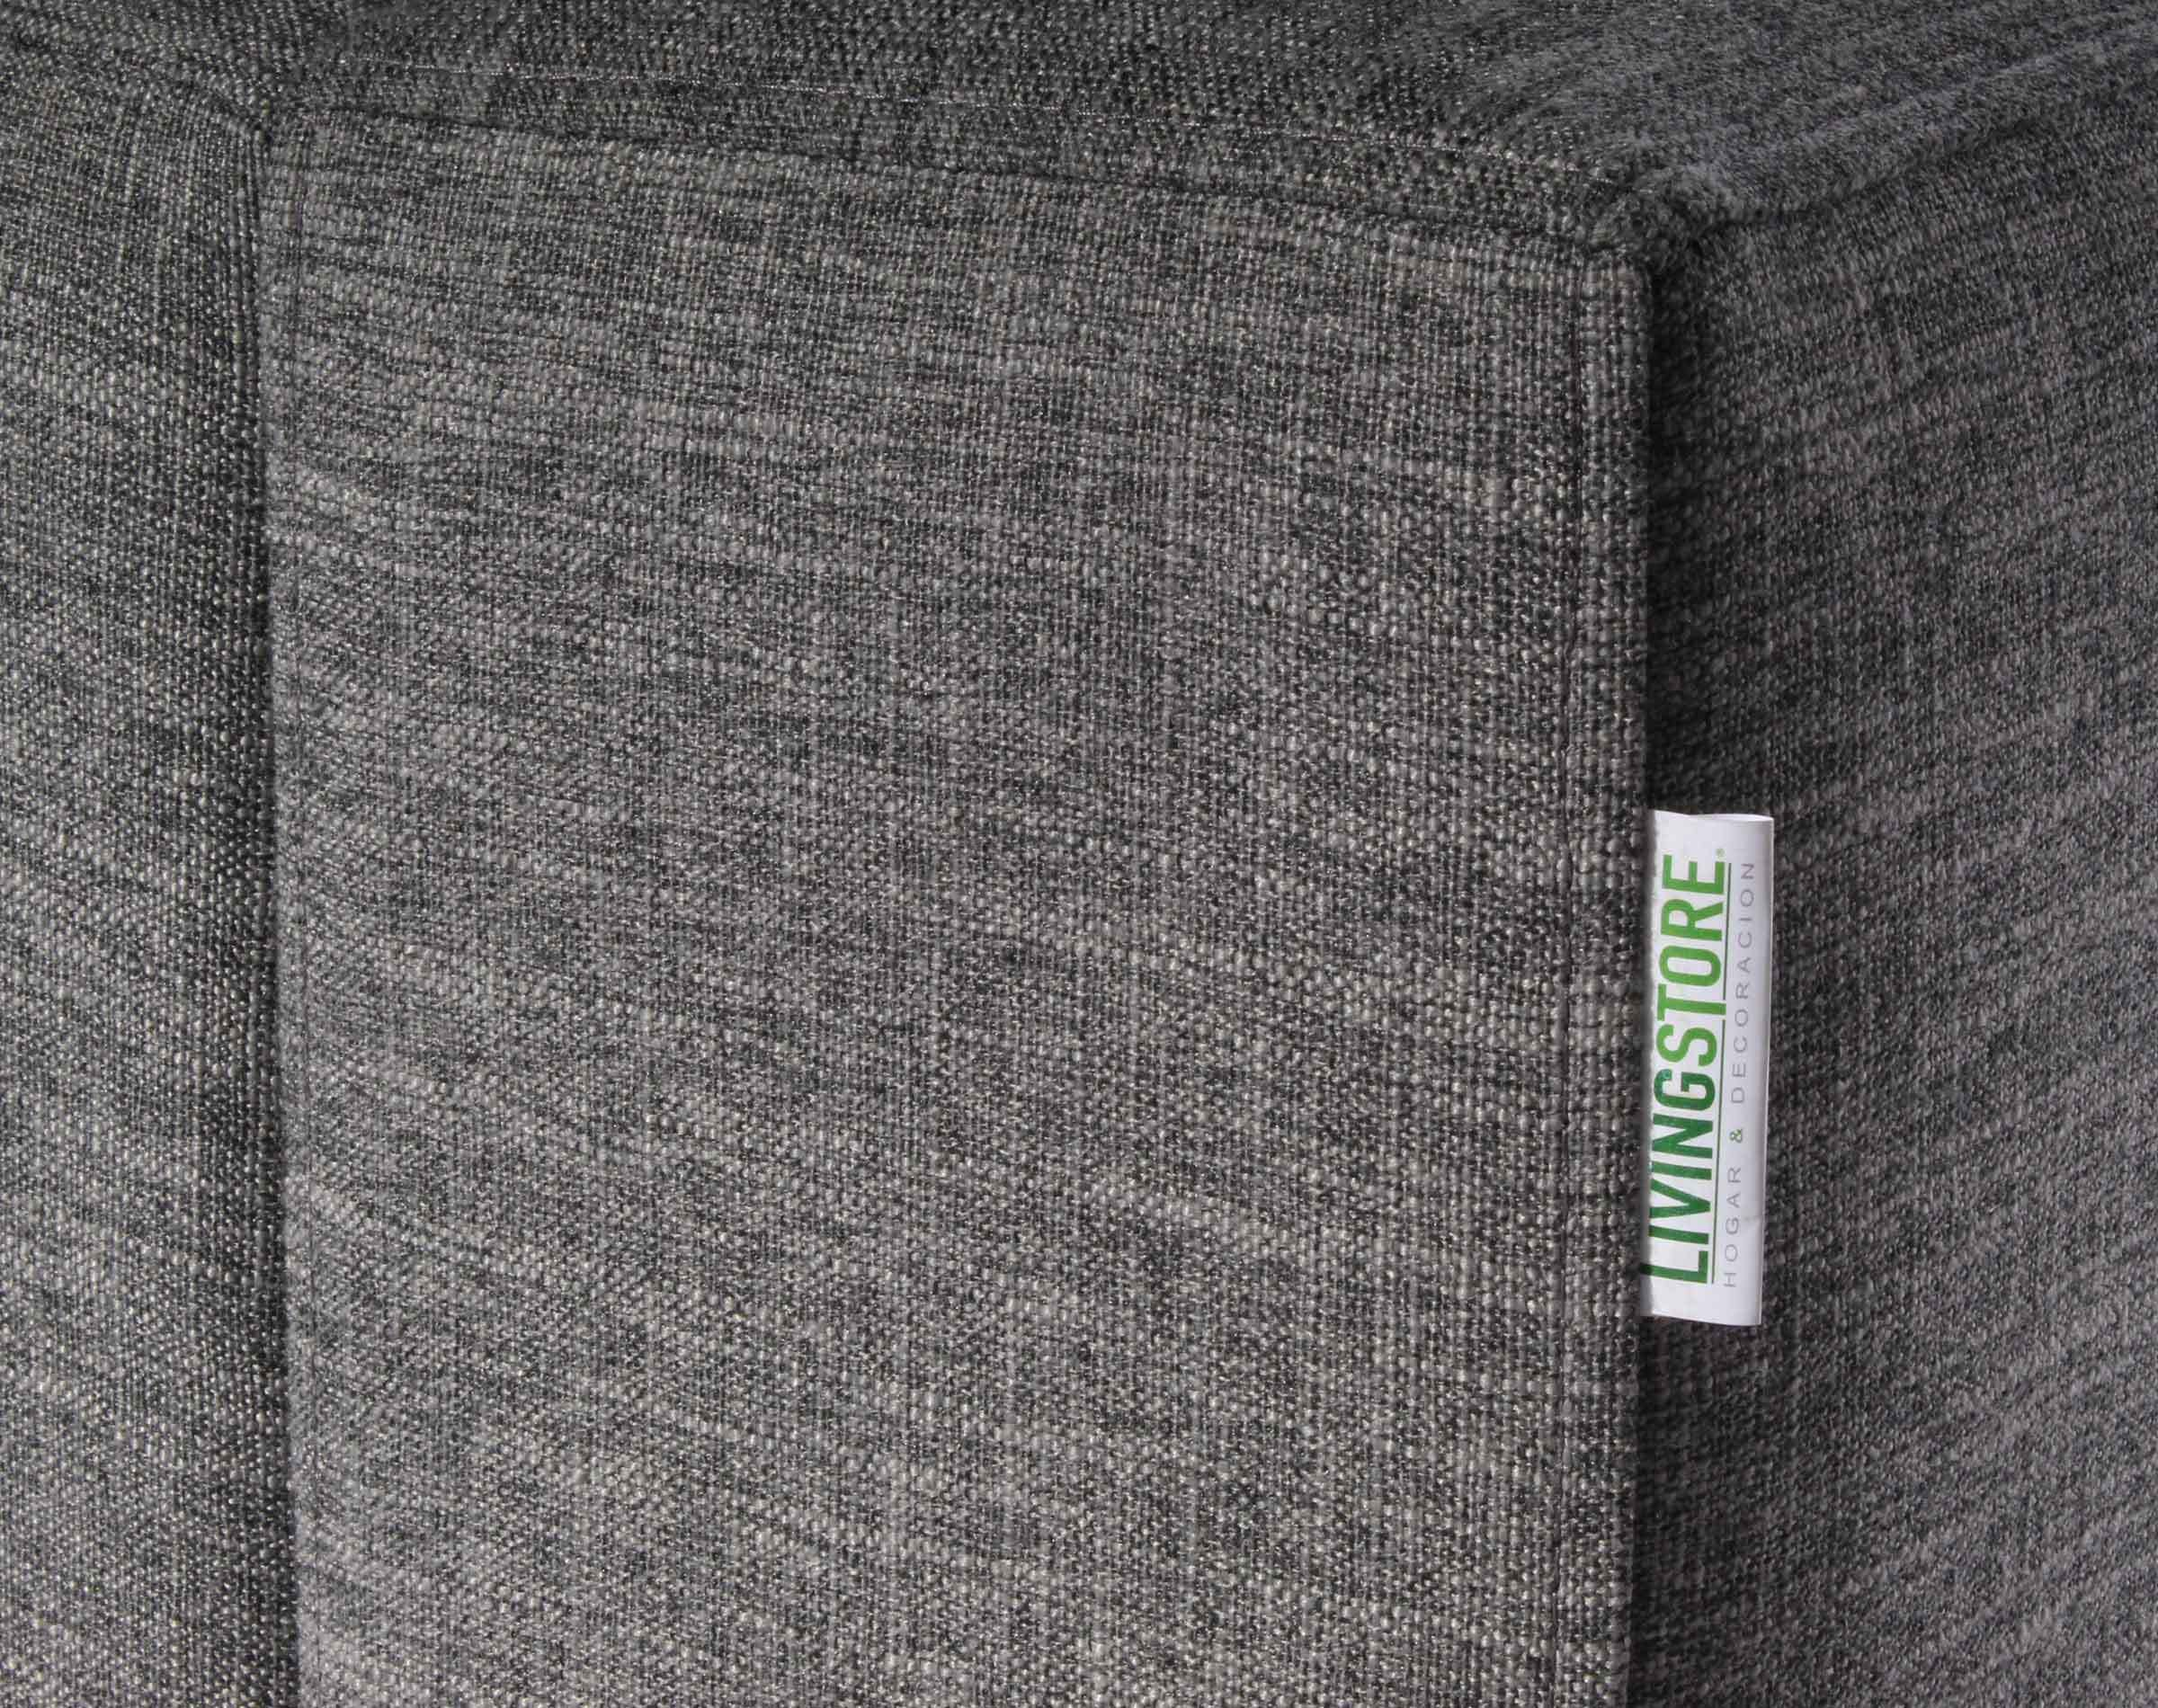 Sofa Thomas Inside Antimanchas Gris detalle